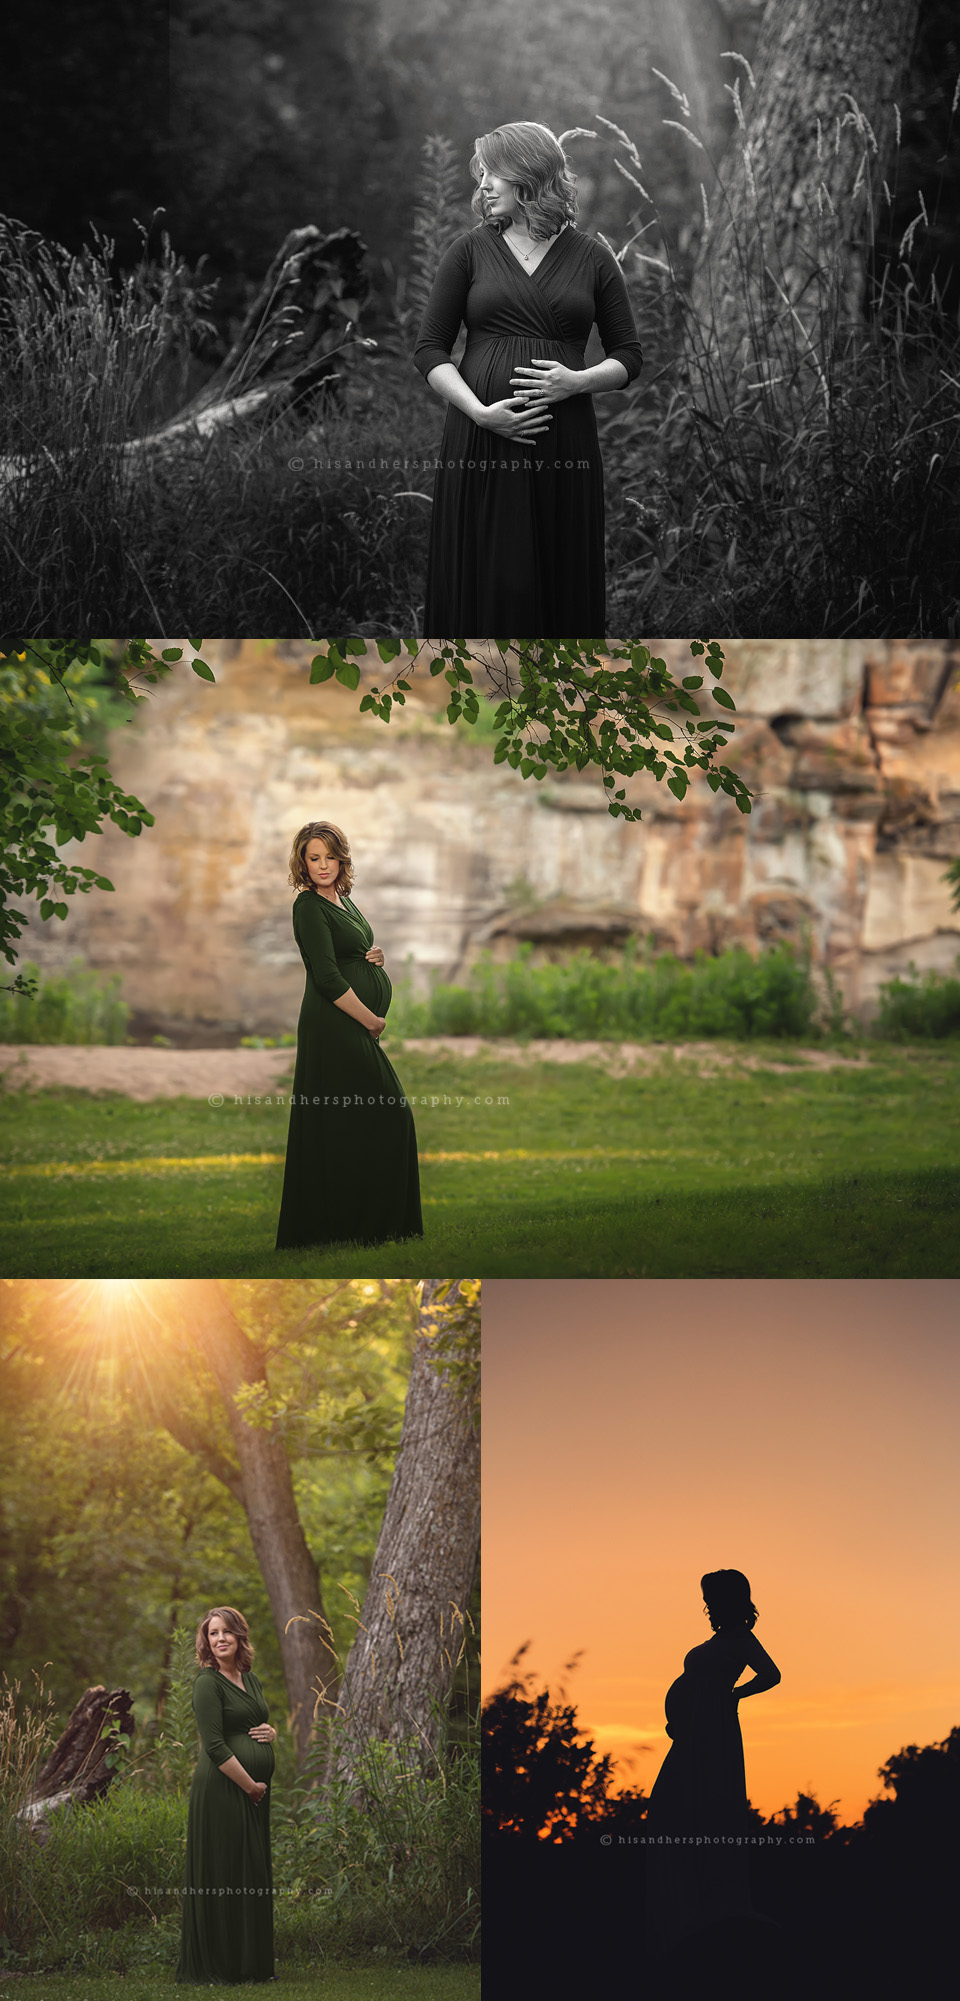 des moines iowa maternity portraits pregnancy pictures expecting mother photo session best maternity photographer iowa